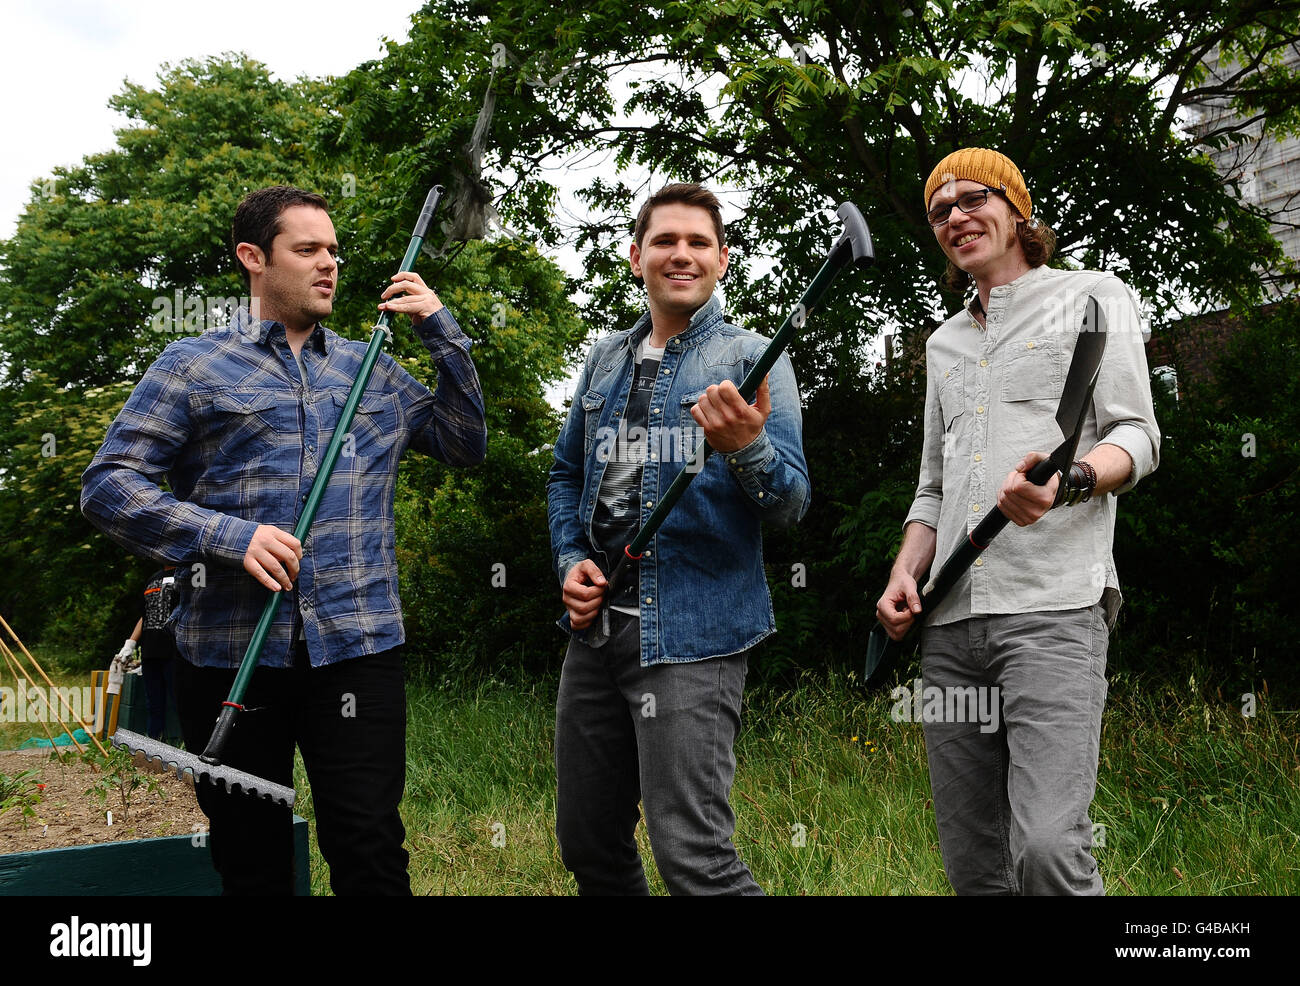 Scouting For Girls help volunteer for Orange RockCorps project - London - Stock Image